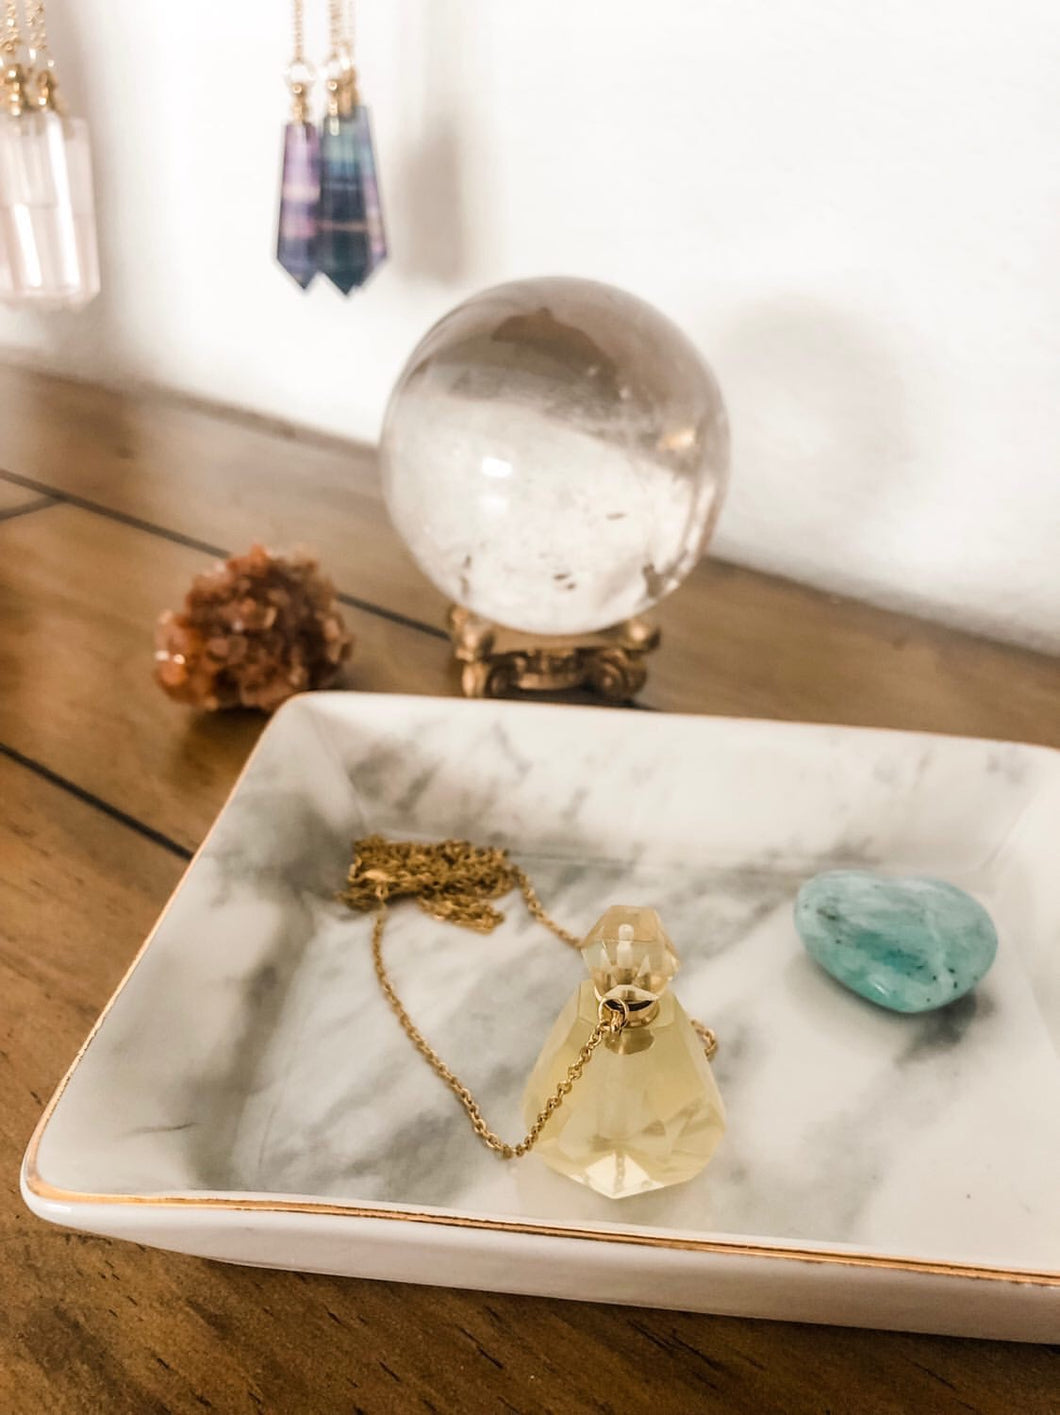 Aromatherapy Necklace - Brass-Plated Chain with Citrine Bottle